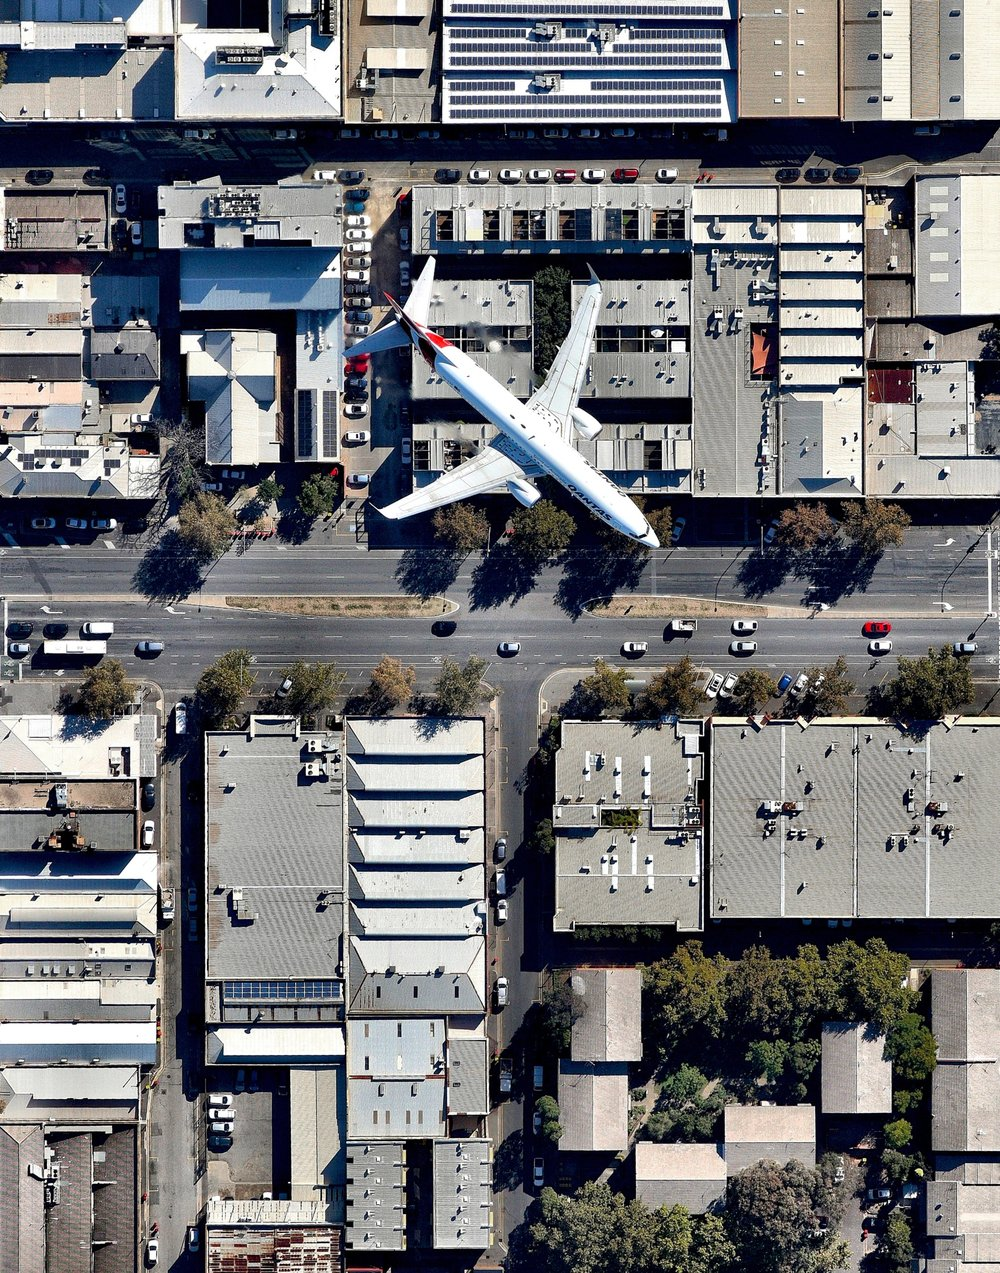 "A Qantas jet flies over Wakefield Street in Adelaide, South Australia, after taking off from Adelaide Airport. Adelaide is the fifth-largest city in Australia, and its airport is the country's fifth-busiest. Between 2016 and 2017, it served roughly 8 million passengers and saw an 11% increase in international travelers.  34°55'41.2""S, 138°36'25.5""E  Source imagery: Nearmap"